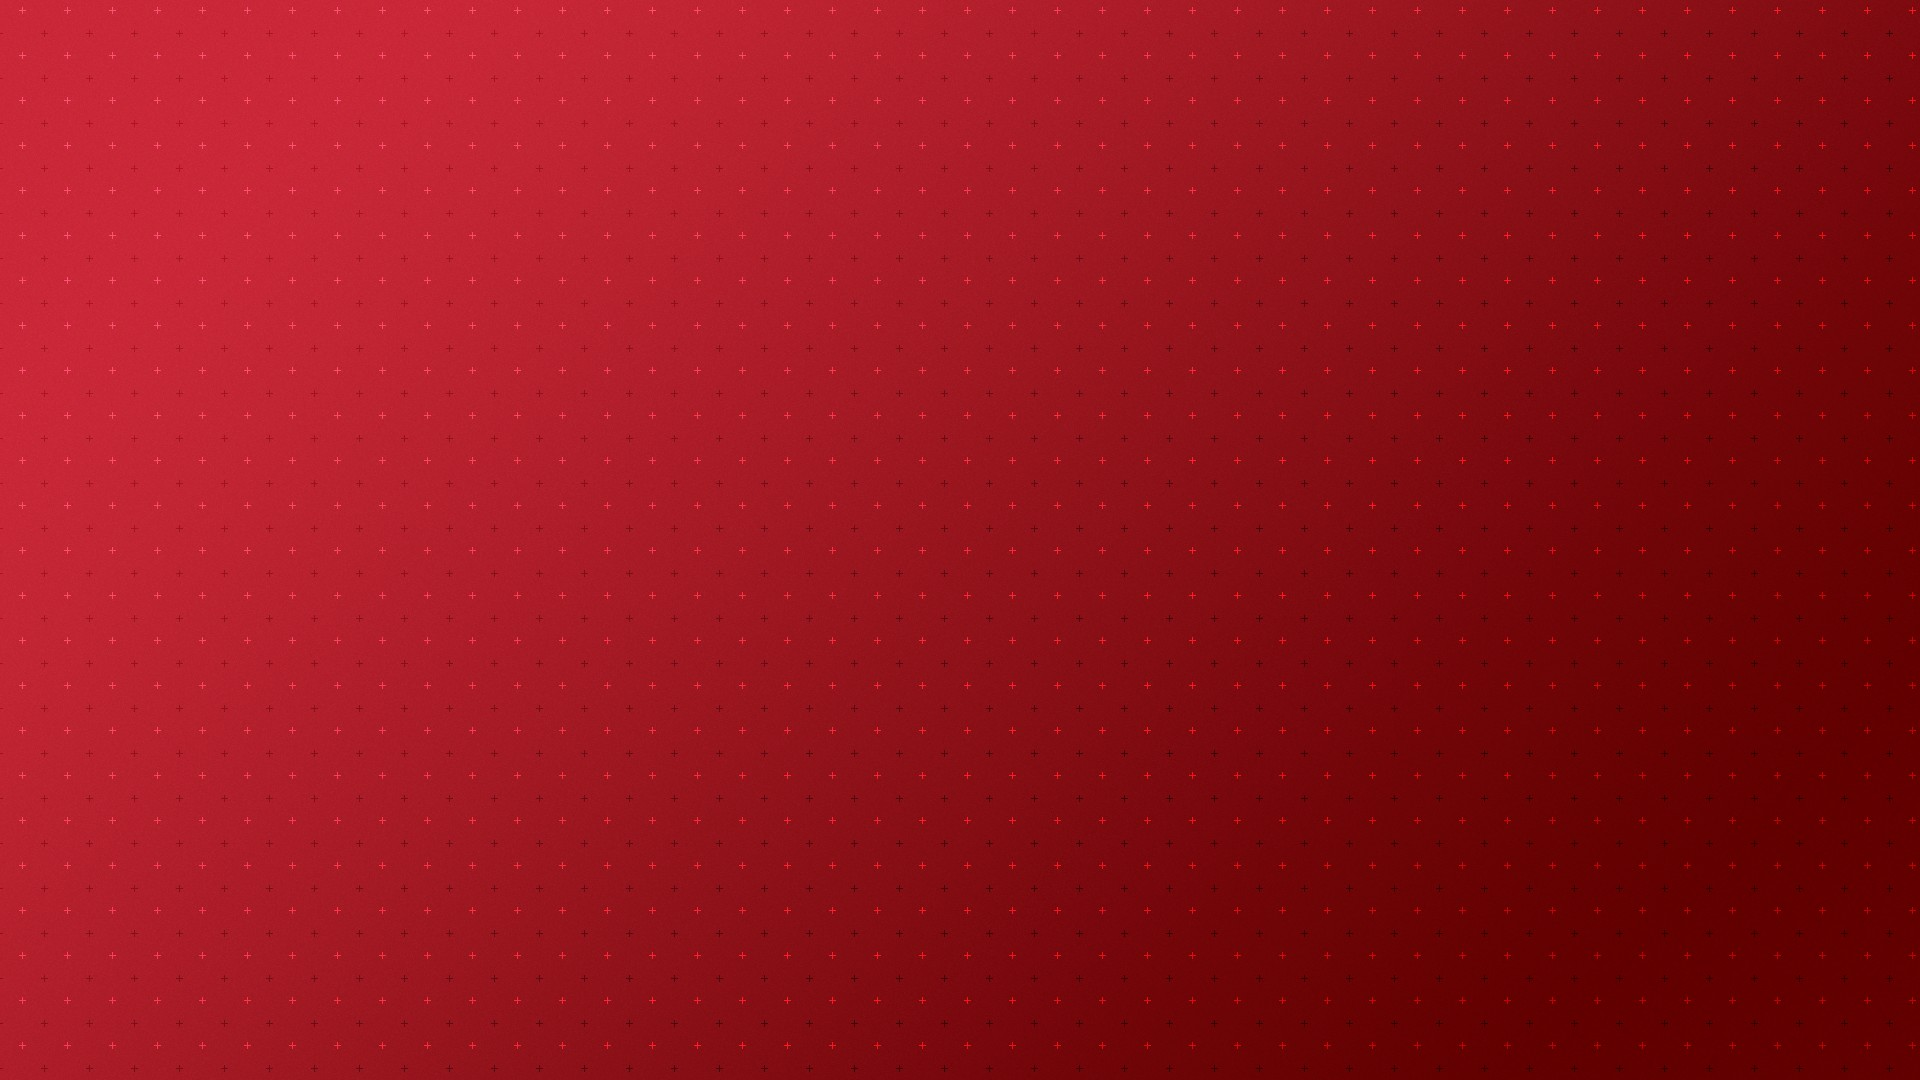 red gradient background download free cool hd wallpapers for